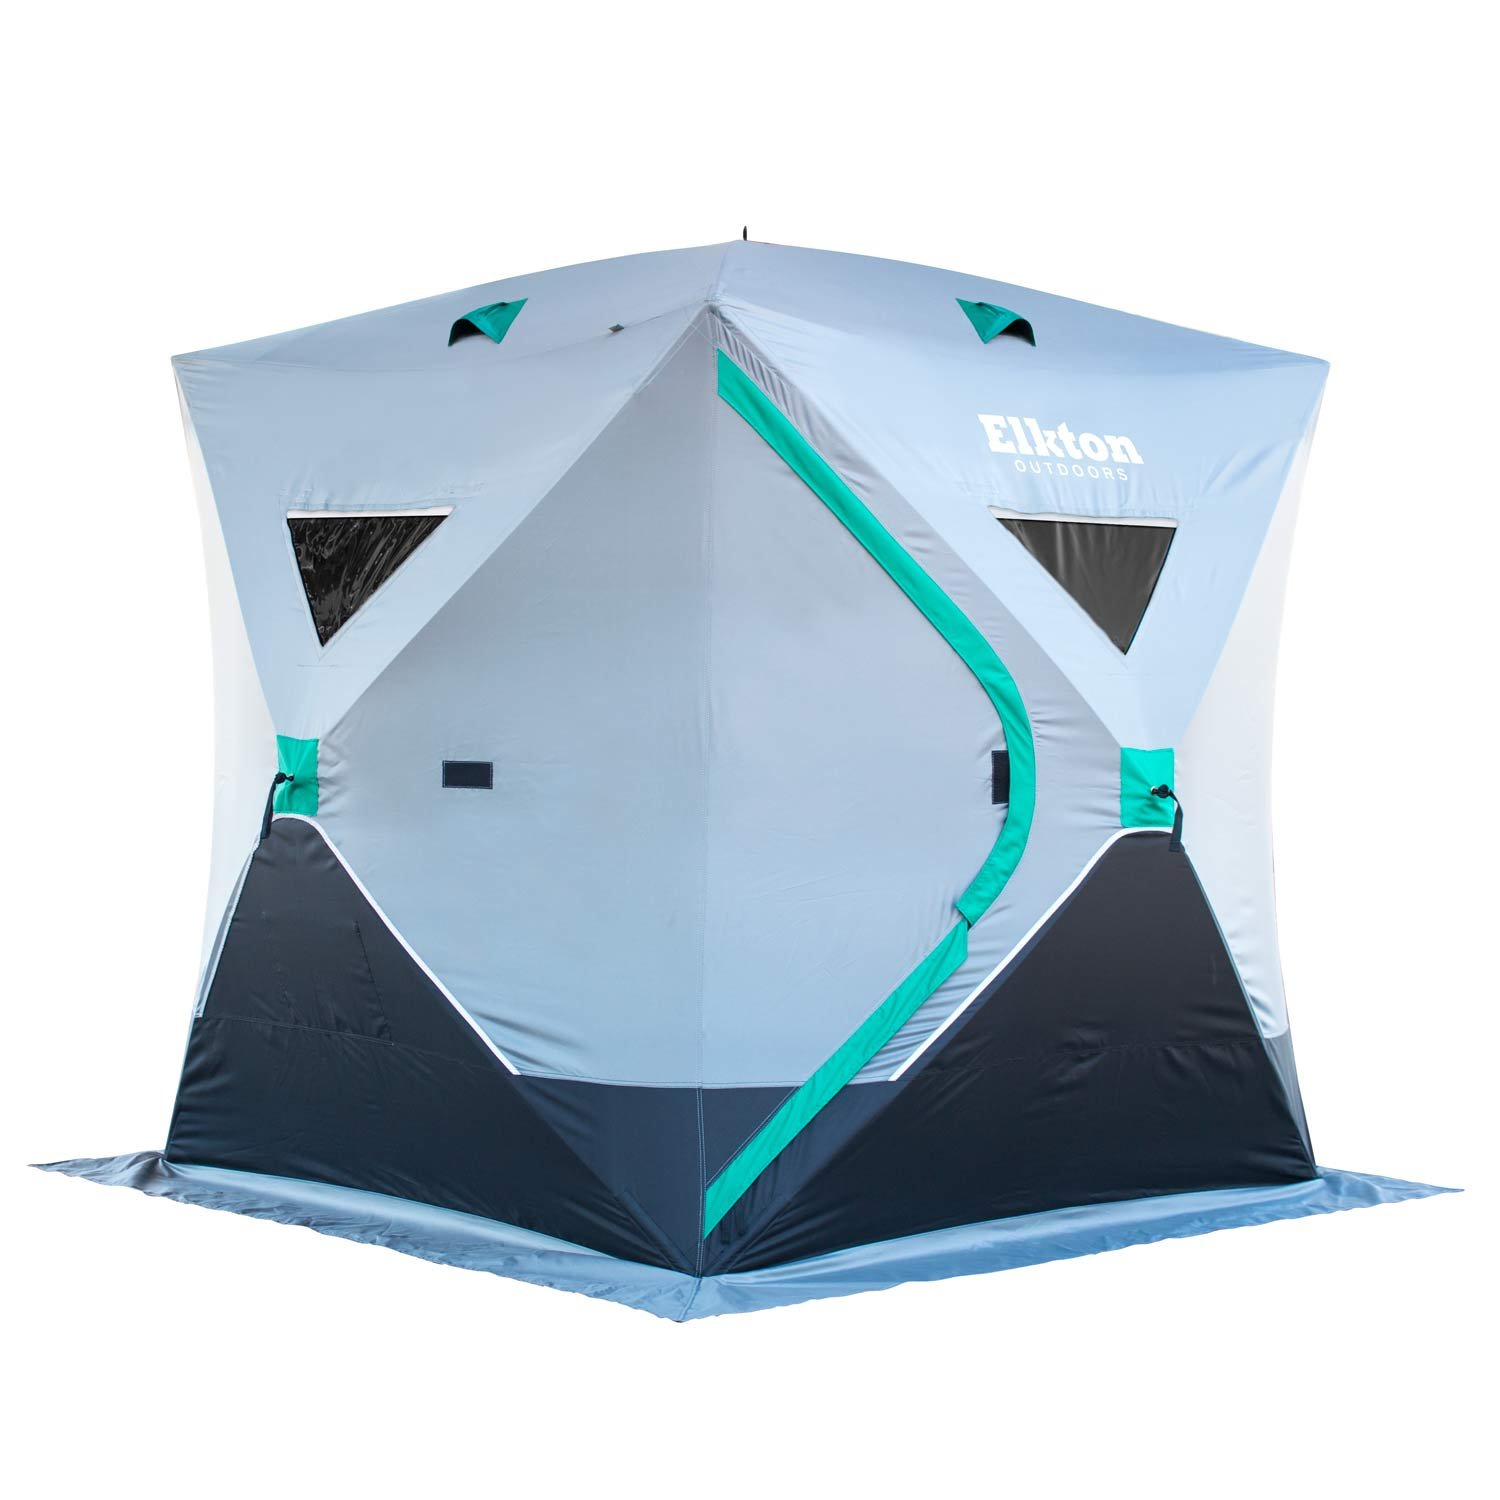 Elkton Outdoors Portable 3-Person Ice Fishing Tent With Ventilation Windows & Carry Pack: Ice Fishing Shelter Includes Tent, Carry Pack, Ice Anchors & Storage Compartments! by Elkton Outdoors